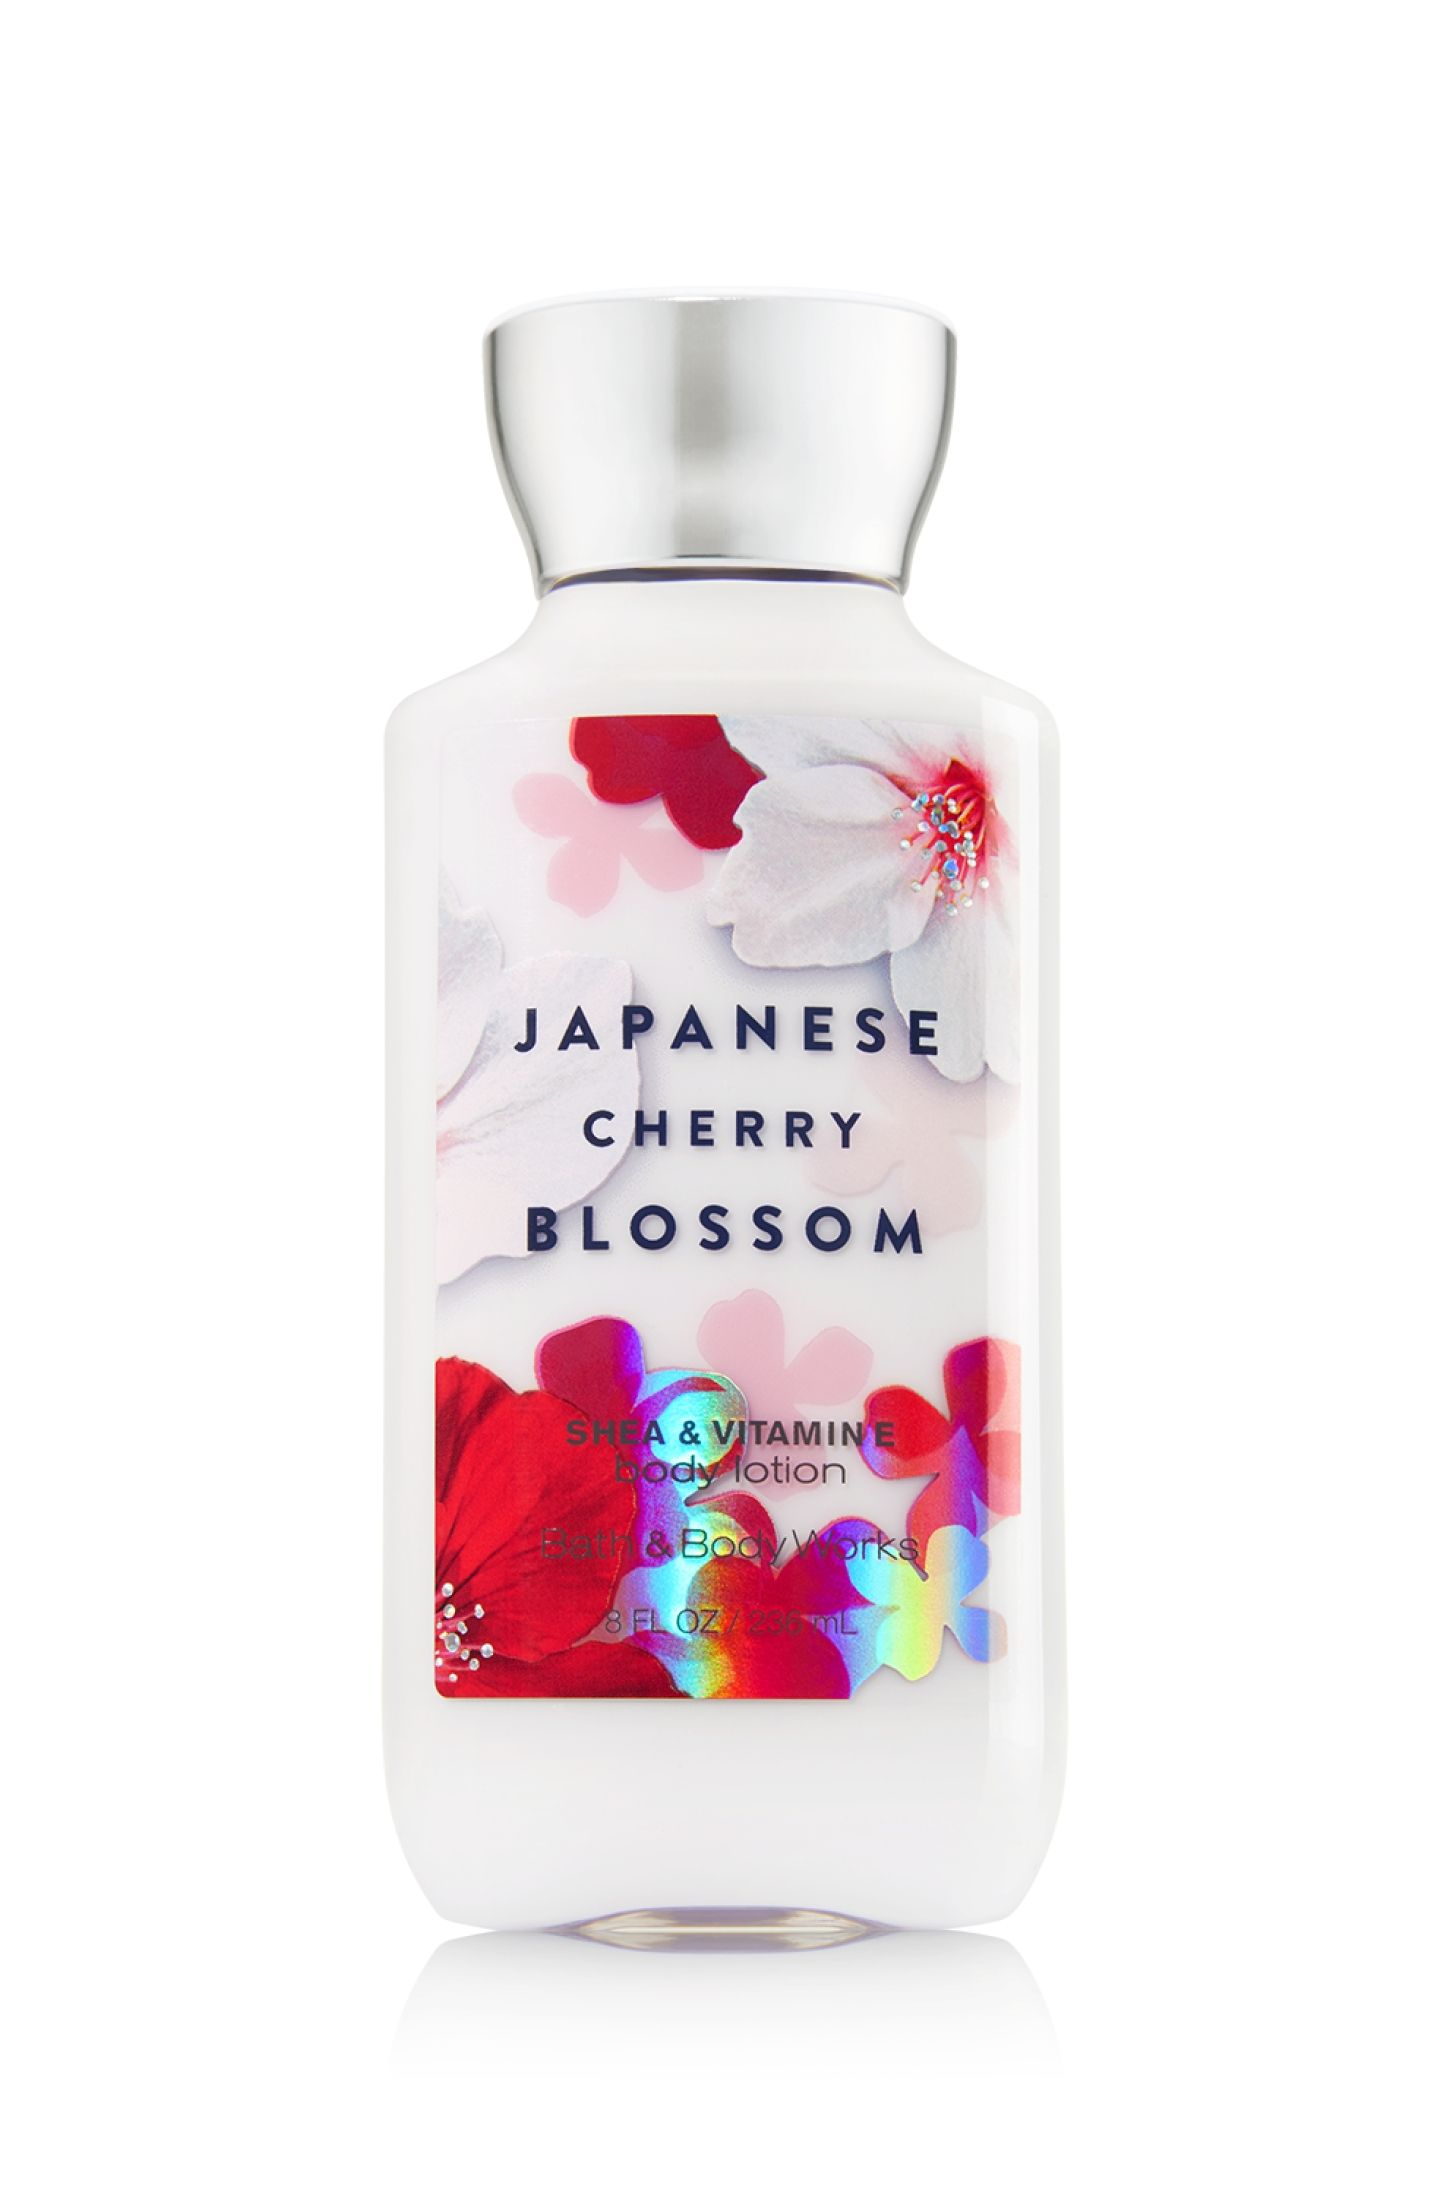 Japanese Cherry Blossom Body Lotion Bath And Body Works Perfume